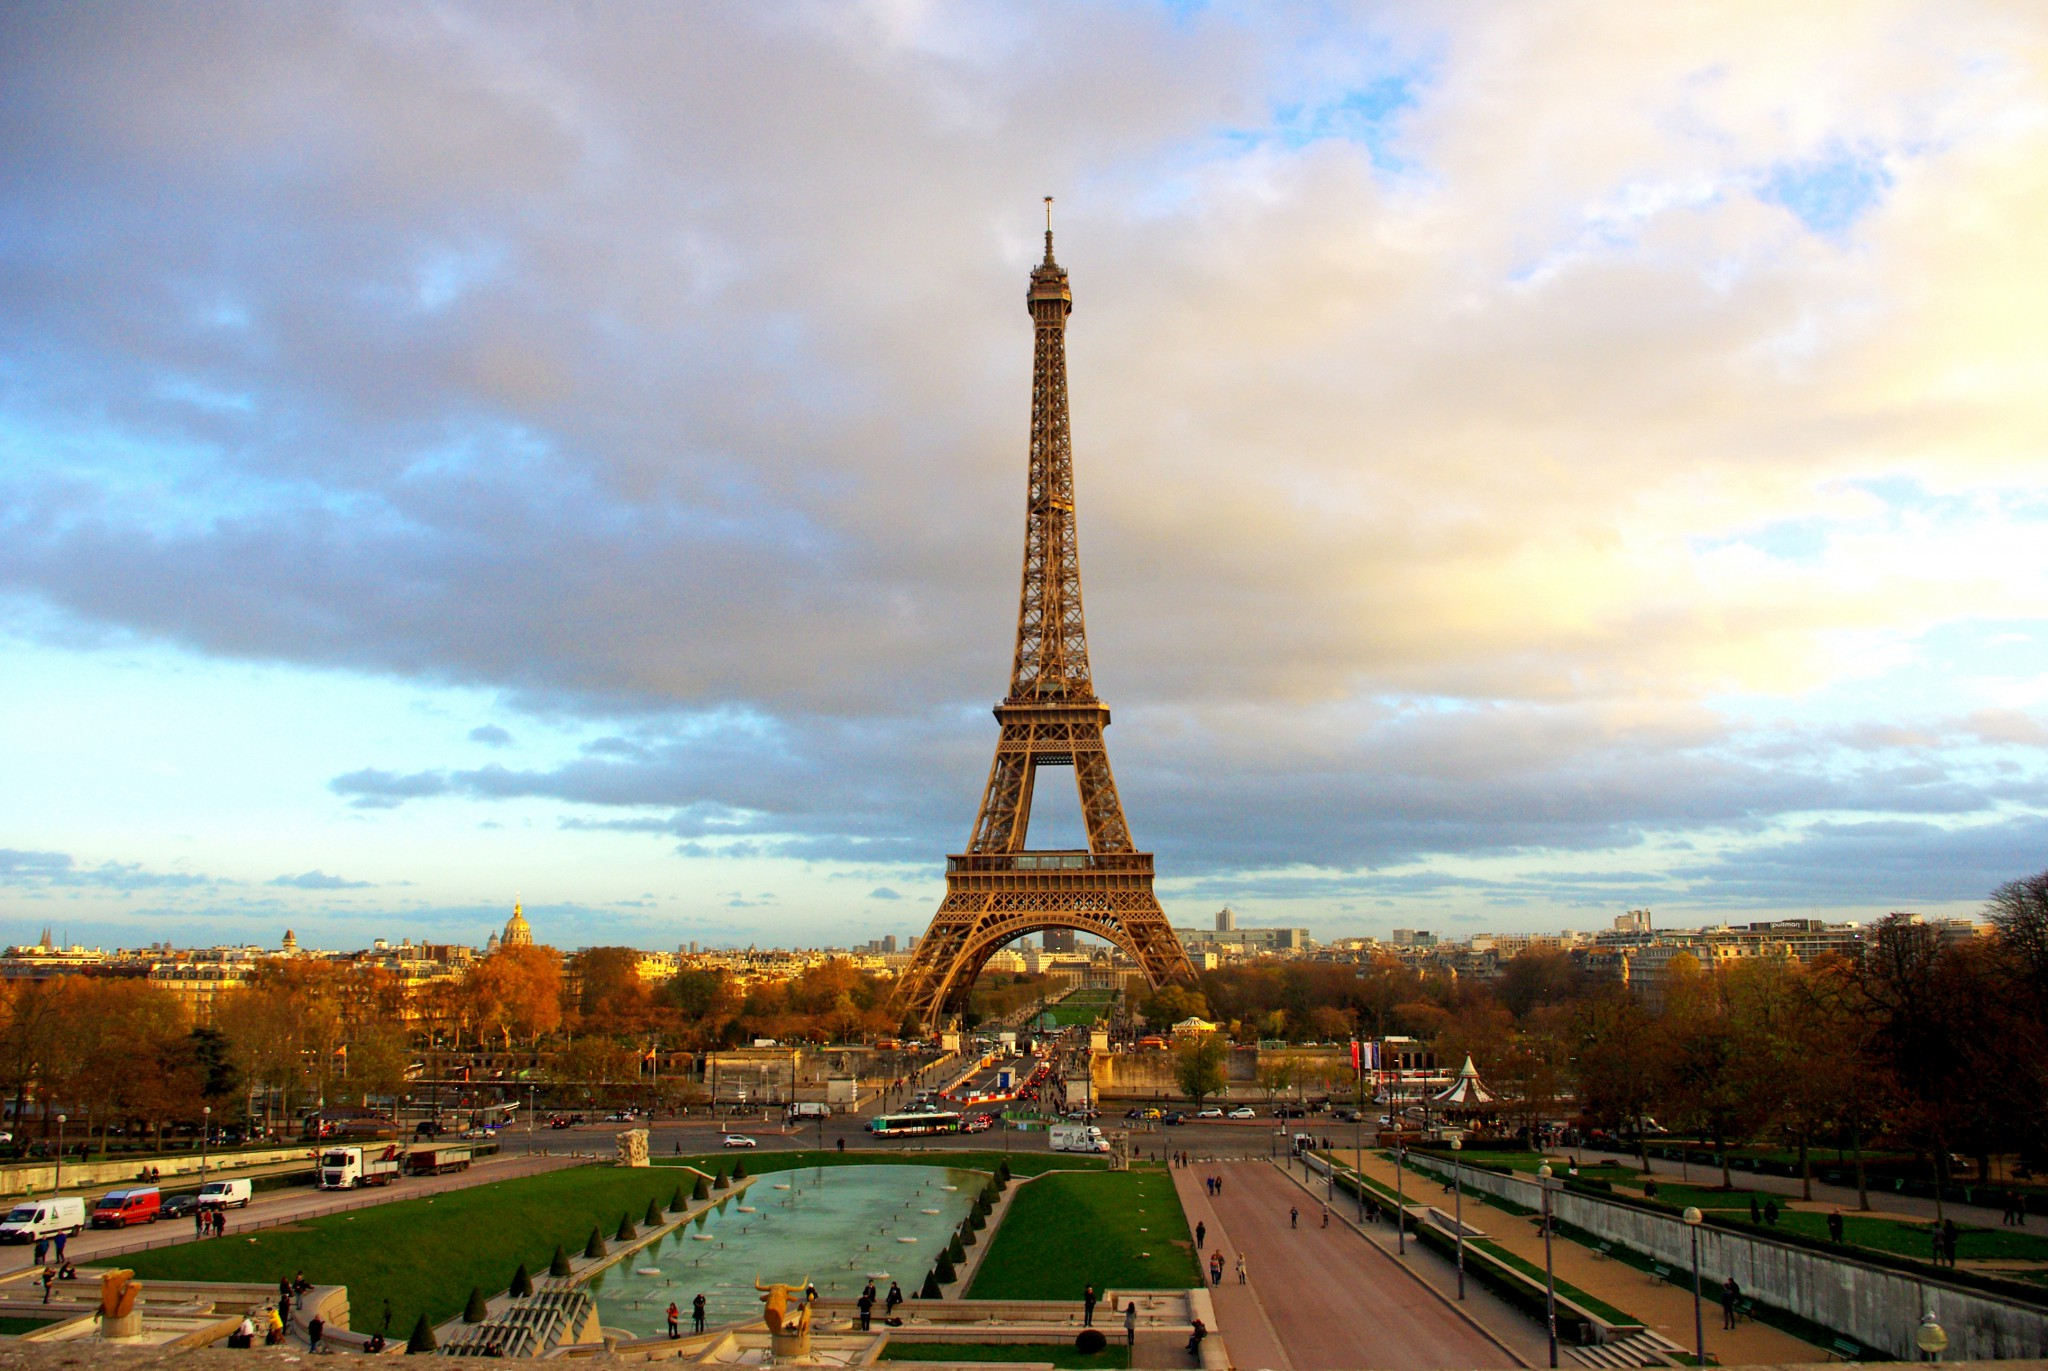 The Eiffel Tower is a beautiful sight.